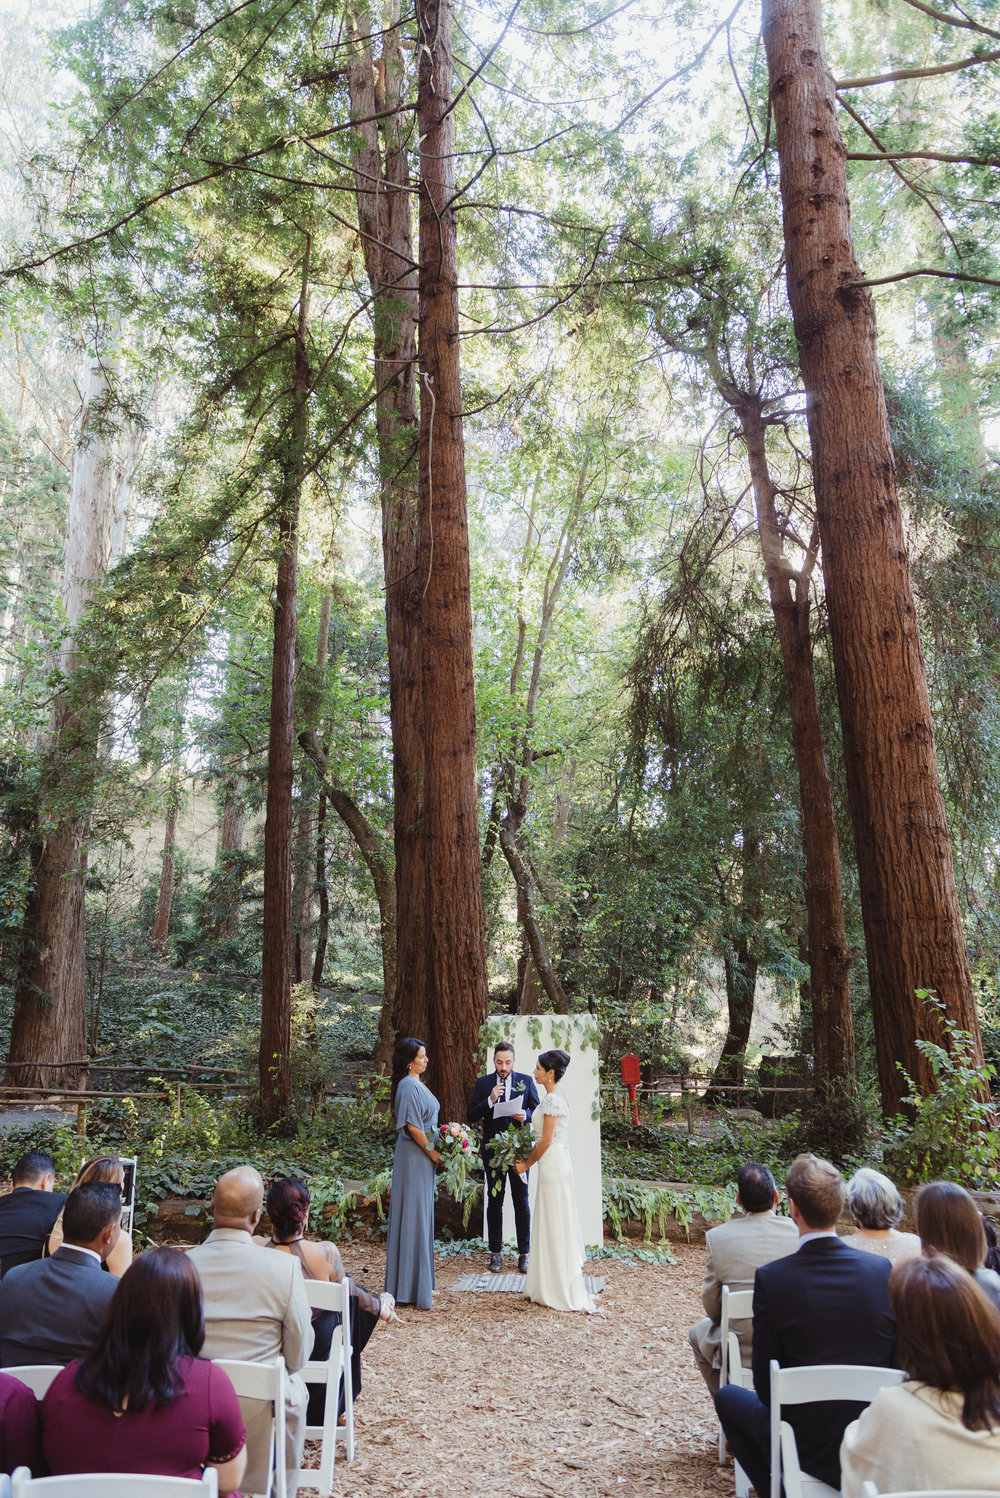 33san-francisco-stern-grove-wedding-photographer-vivianchen-234.jpg